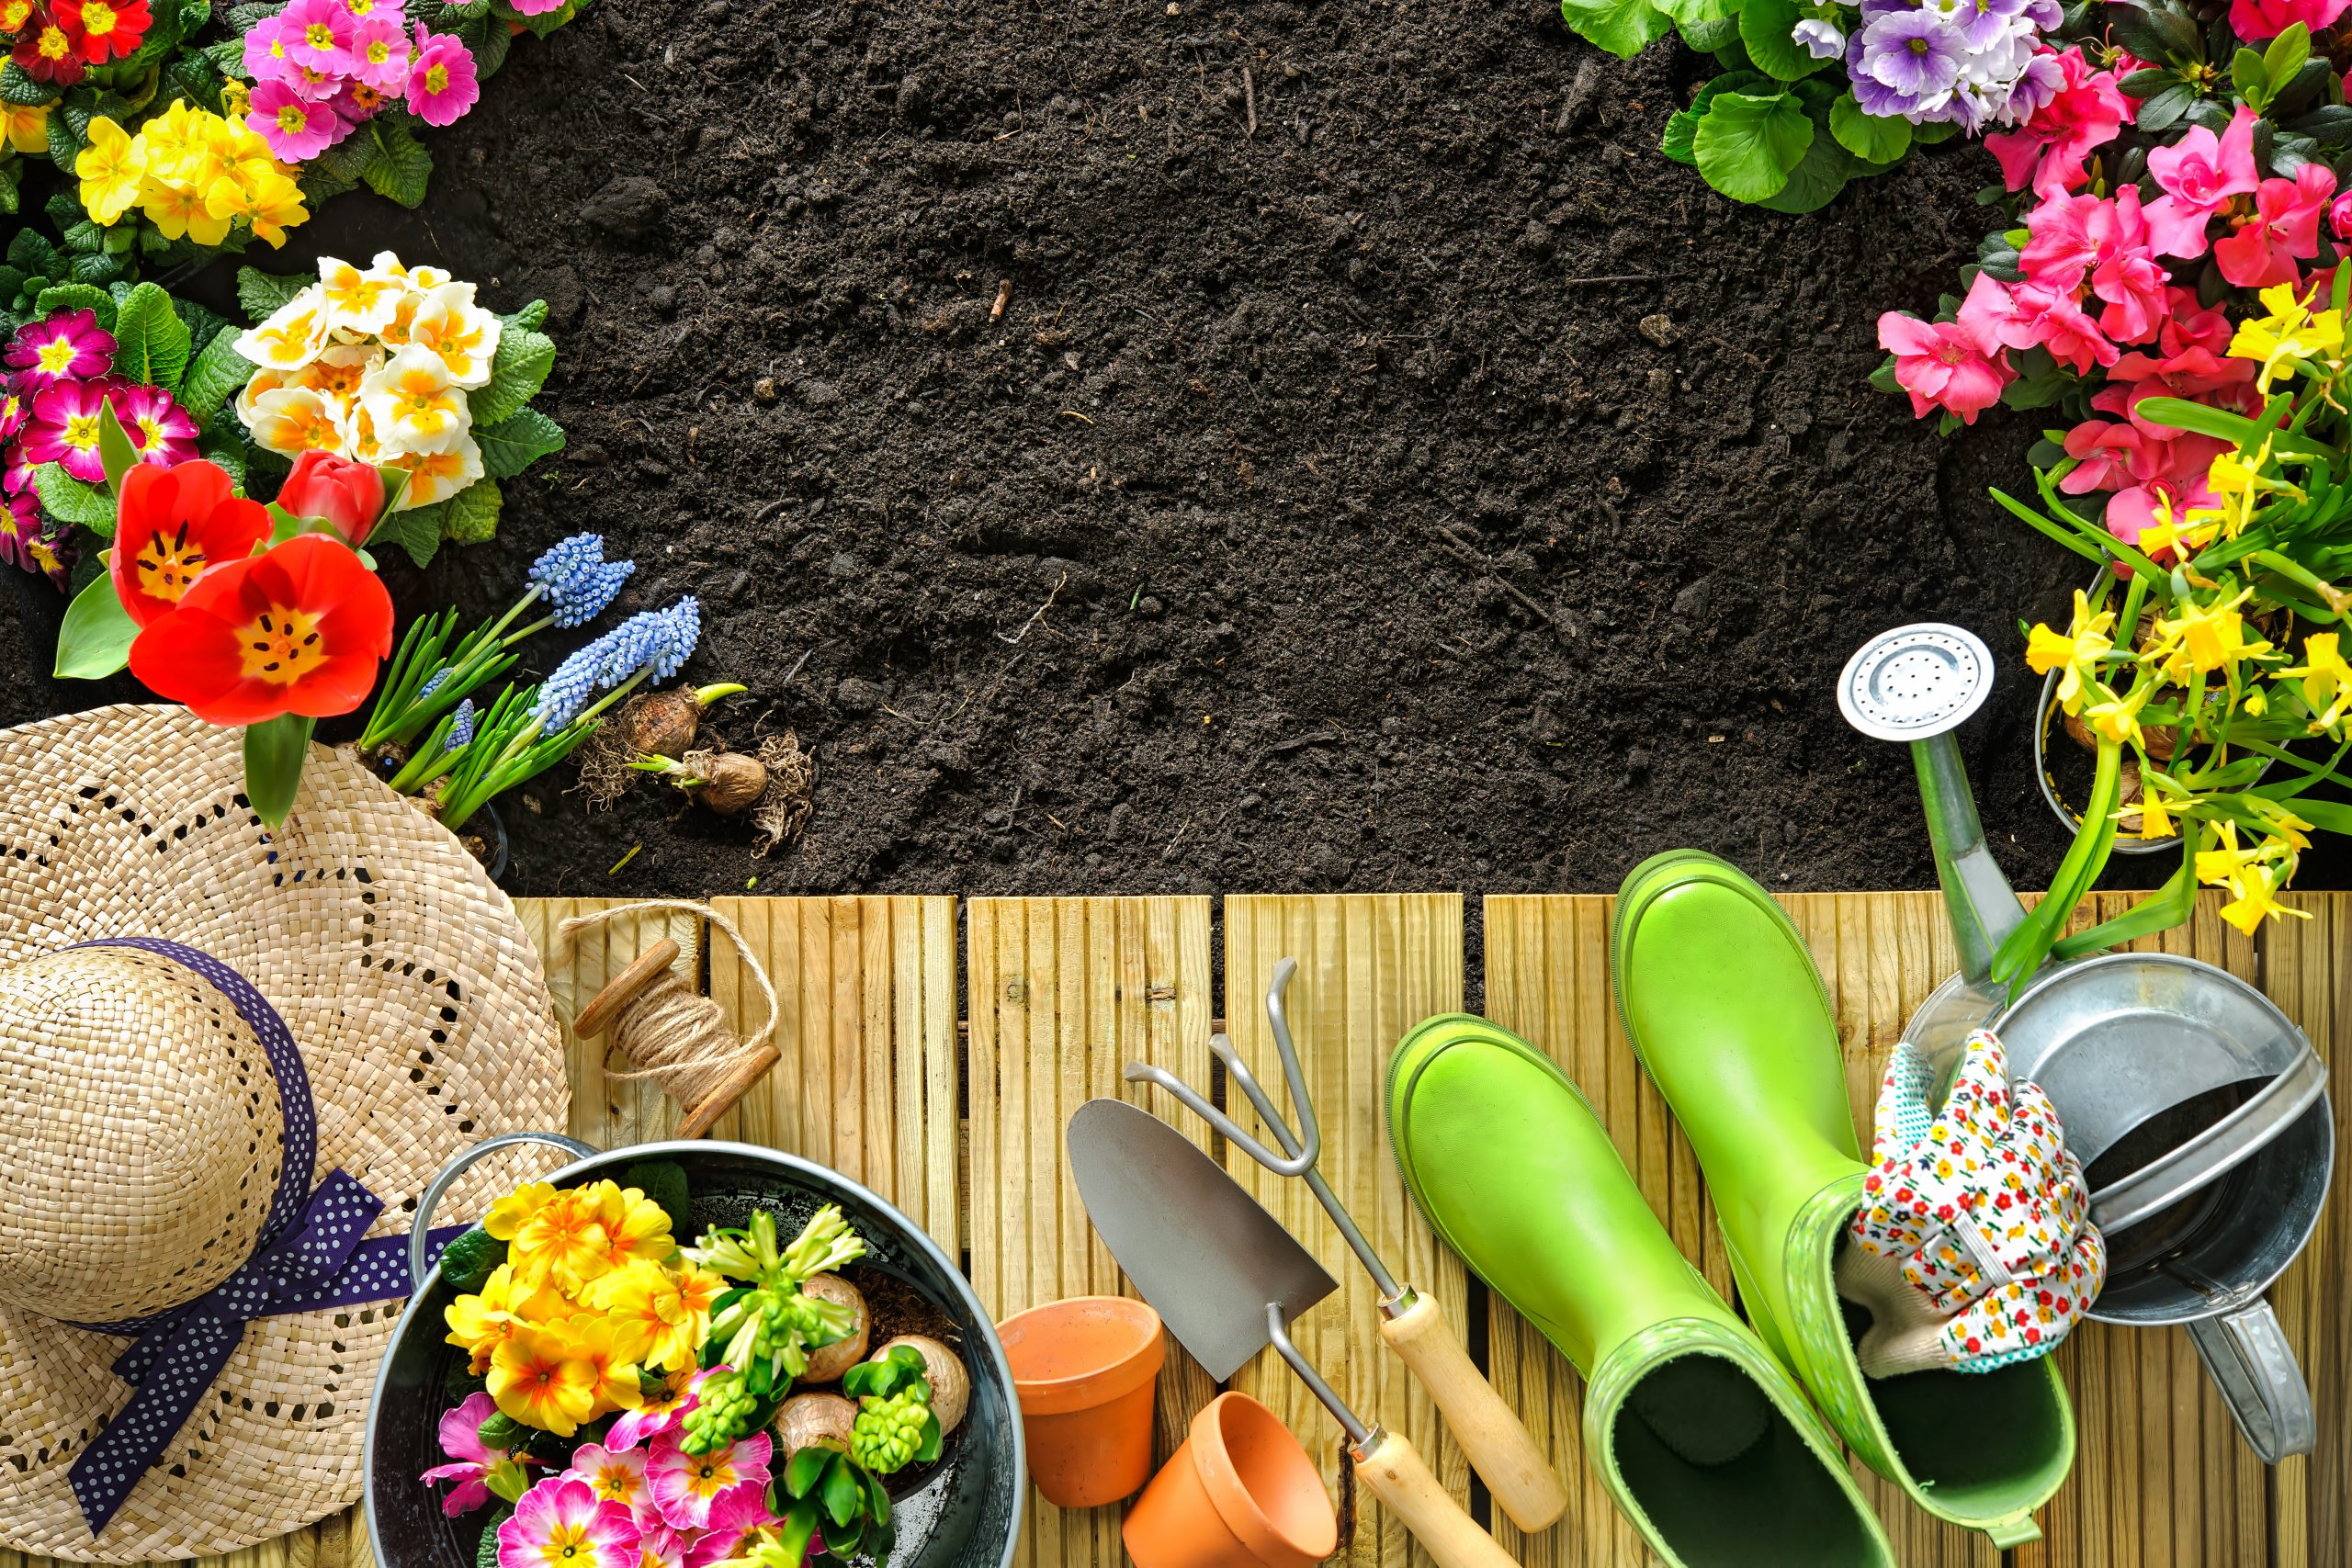 Summer Garden tools and flowers